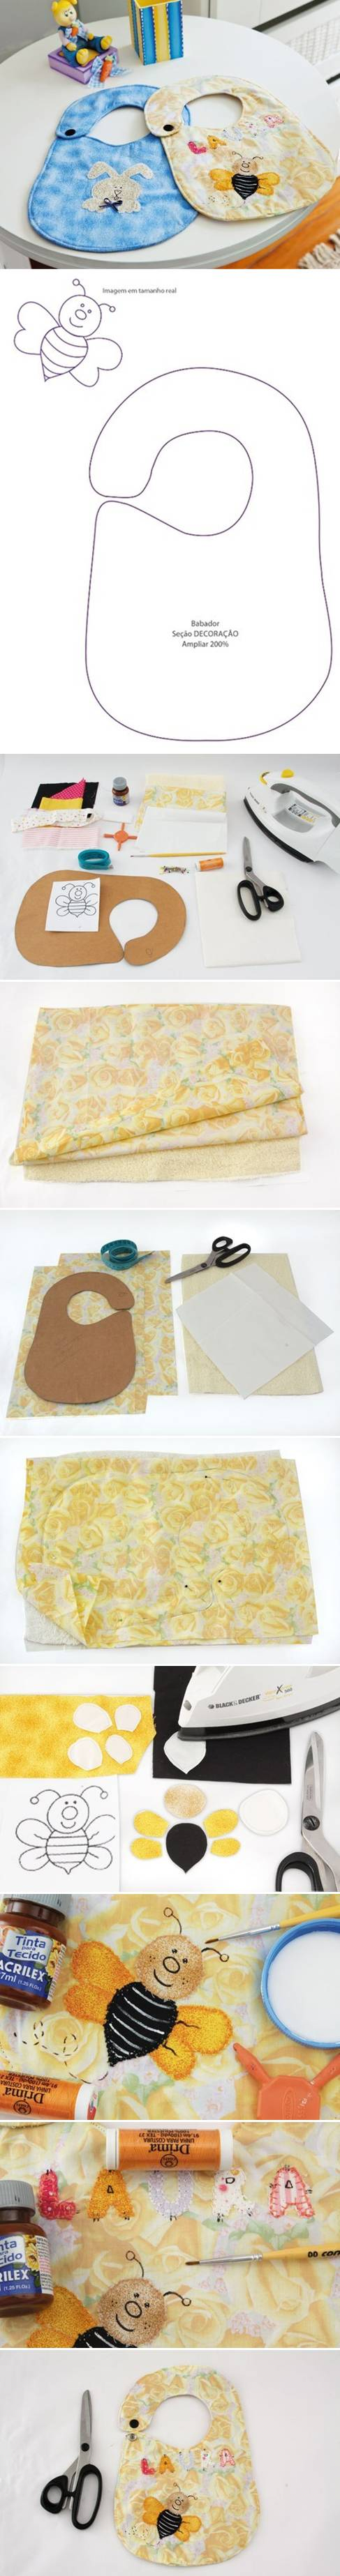 How To Make Baby Bibs step by step DIY tutorial instructions